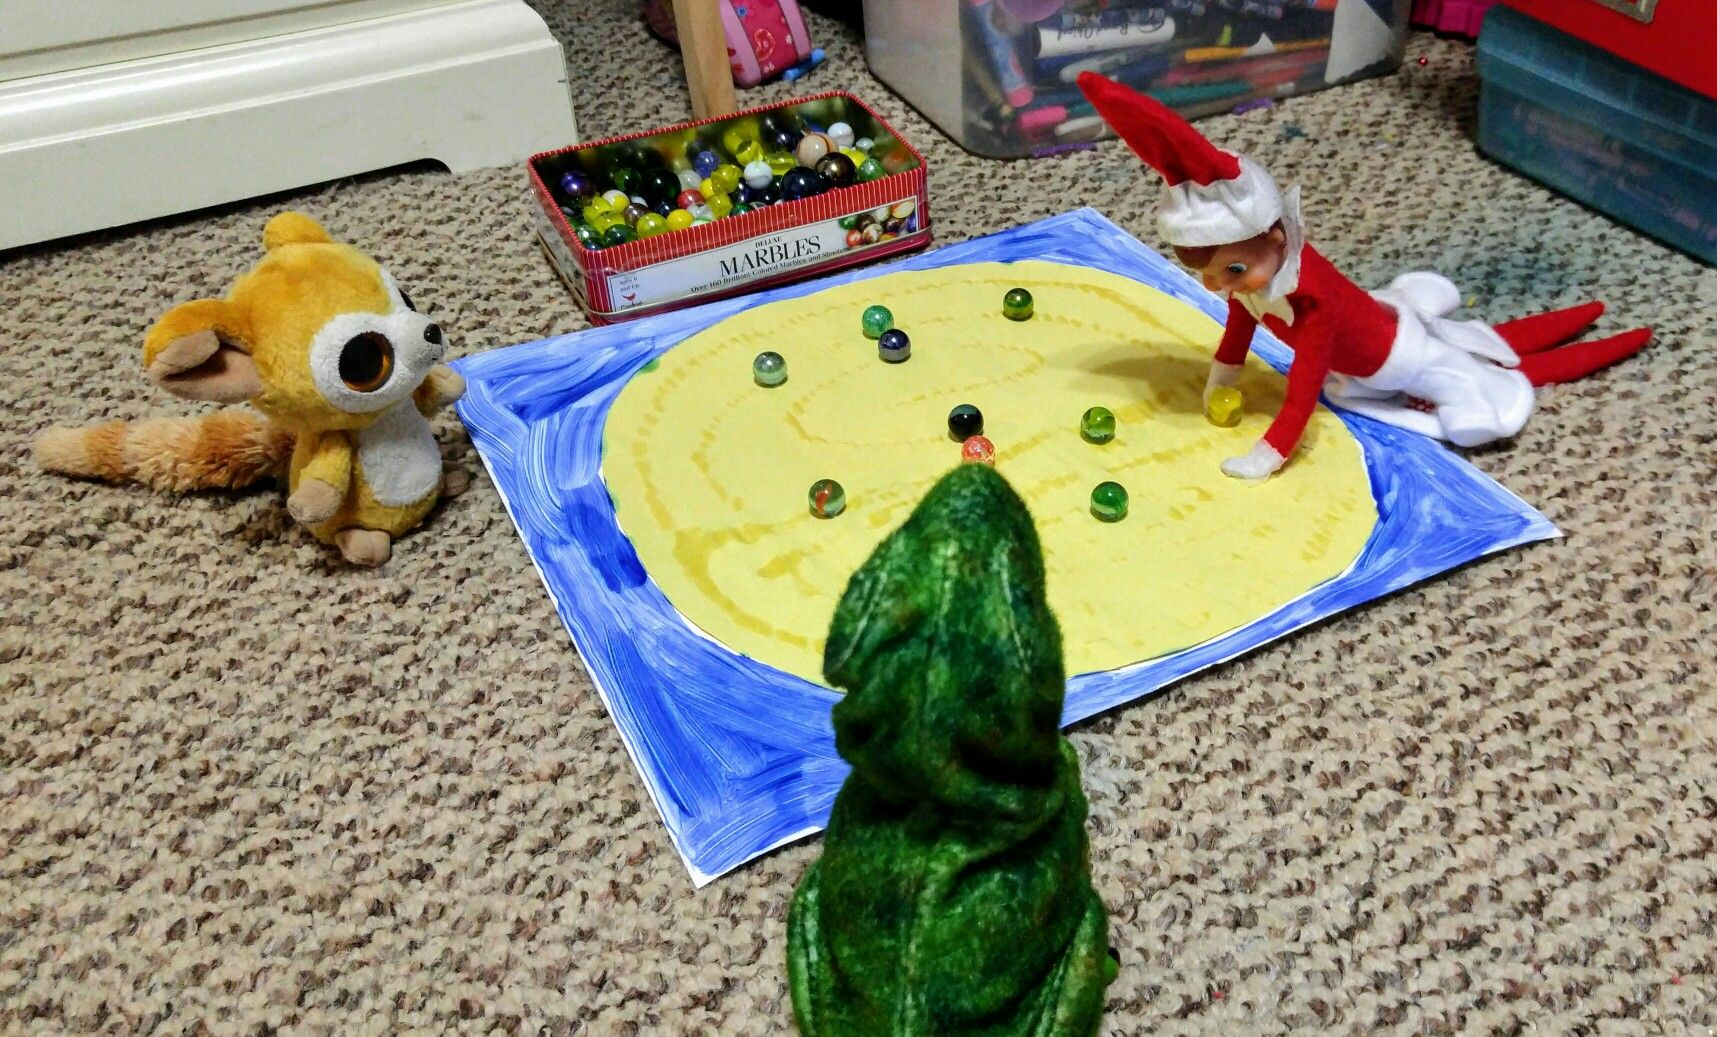 A Game Of Marbles With Images Kids Rugs The Elf Decor